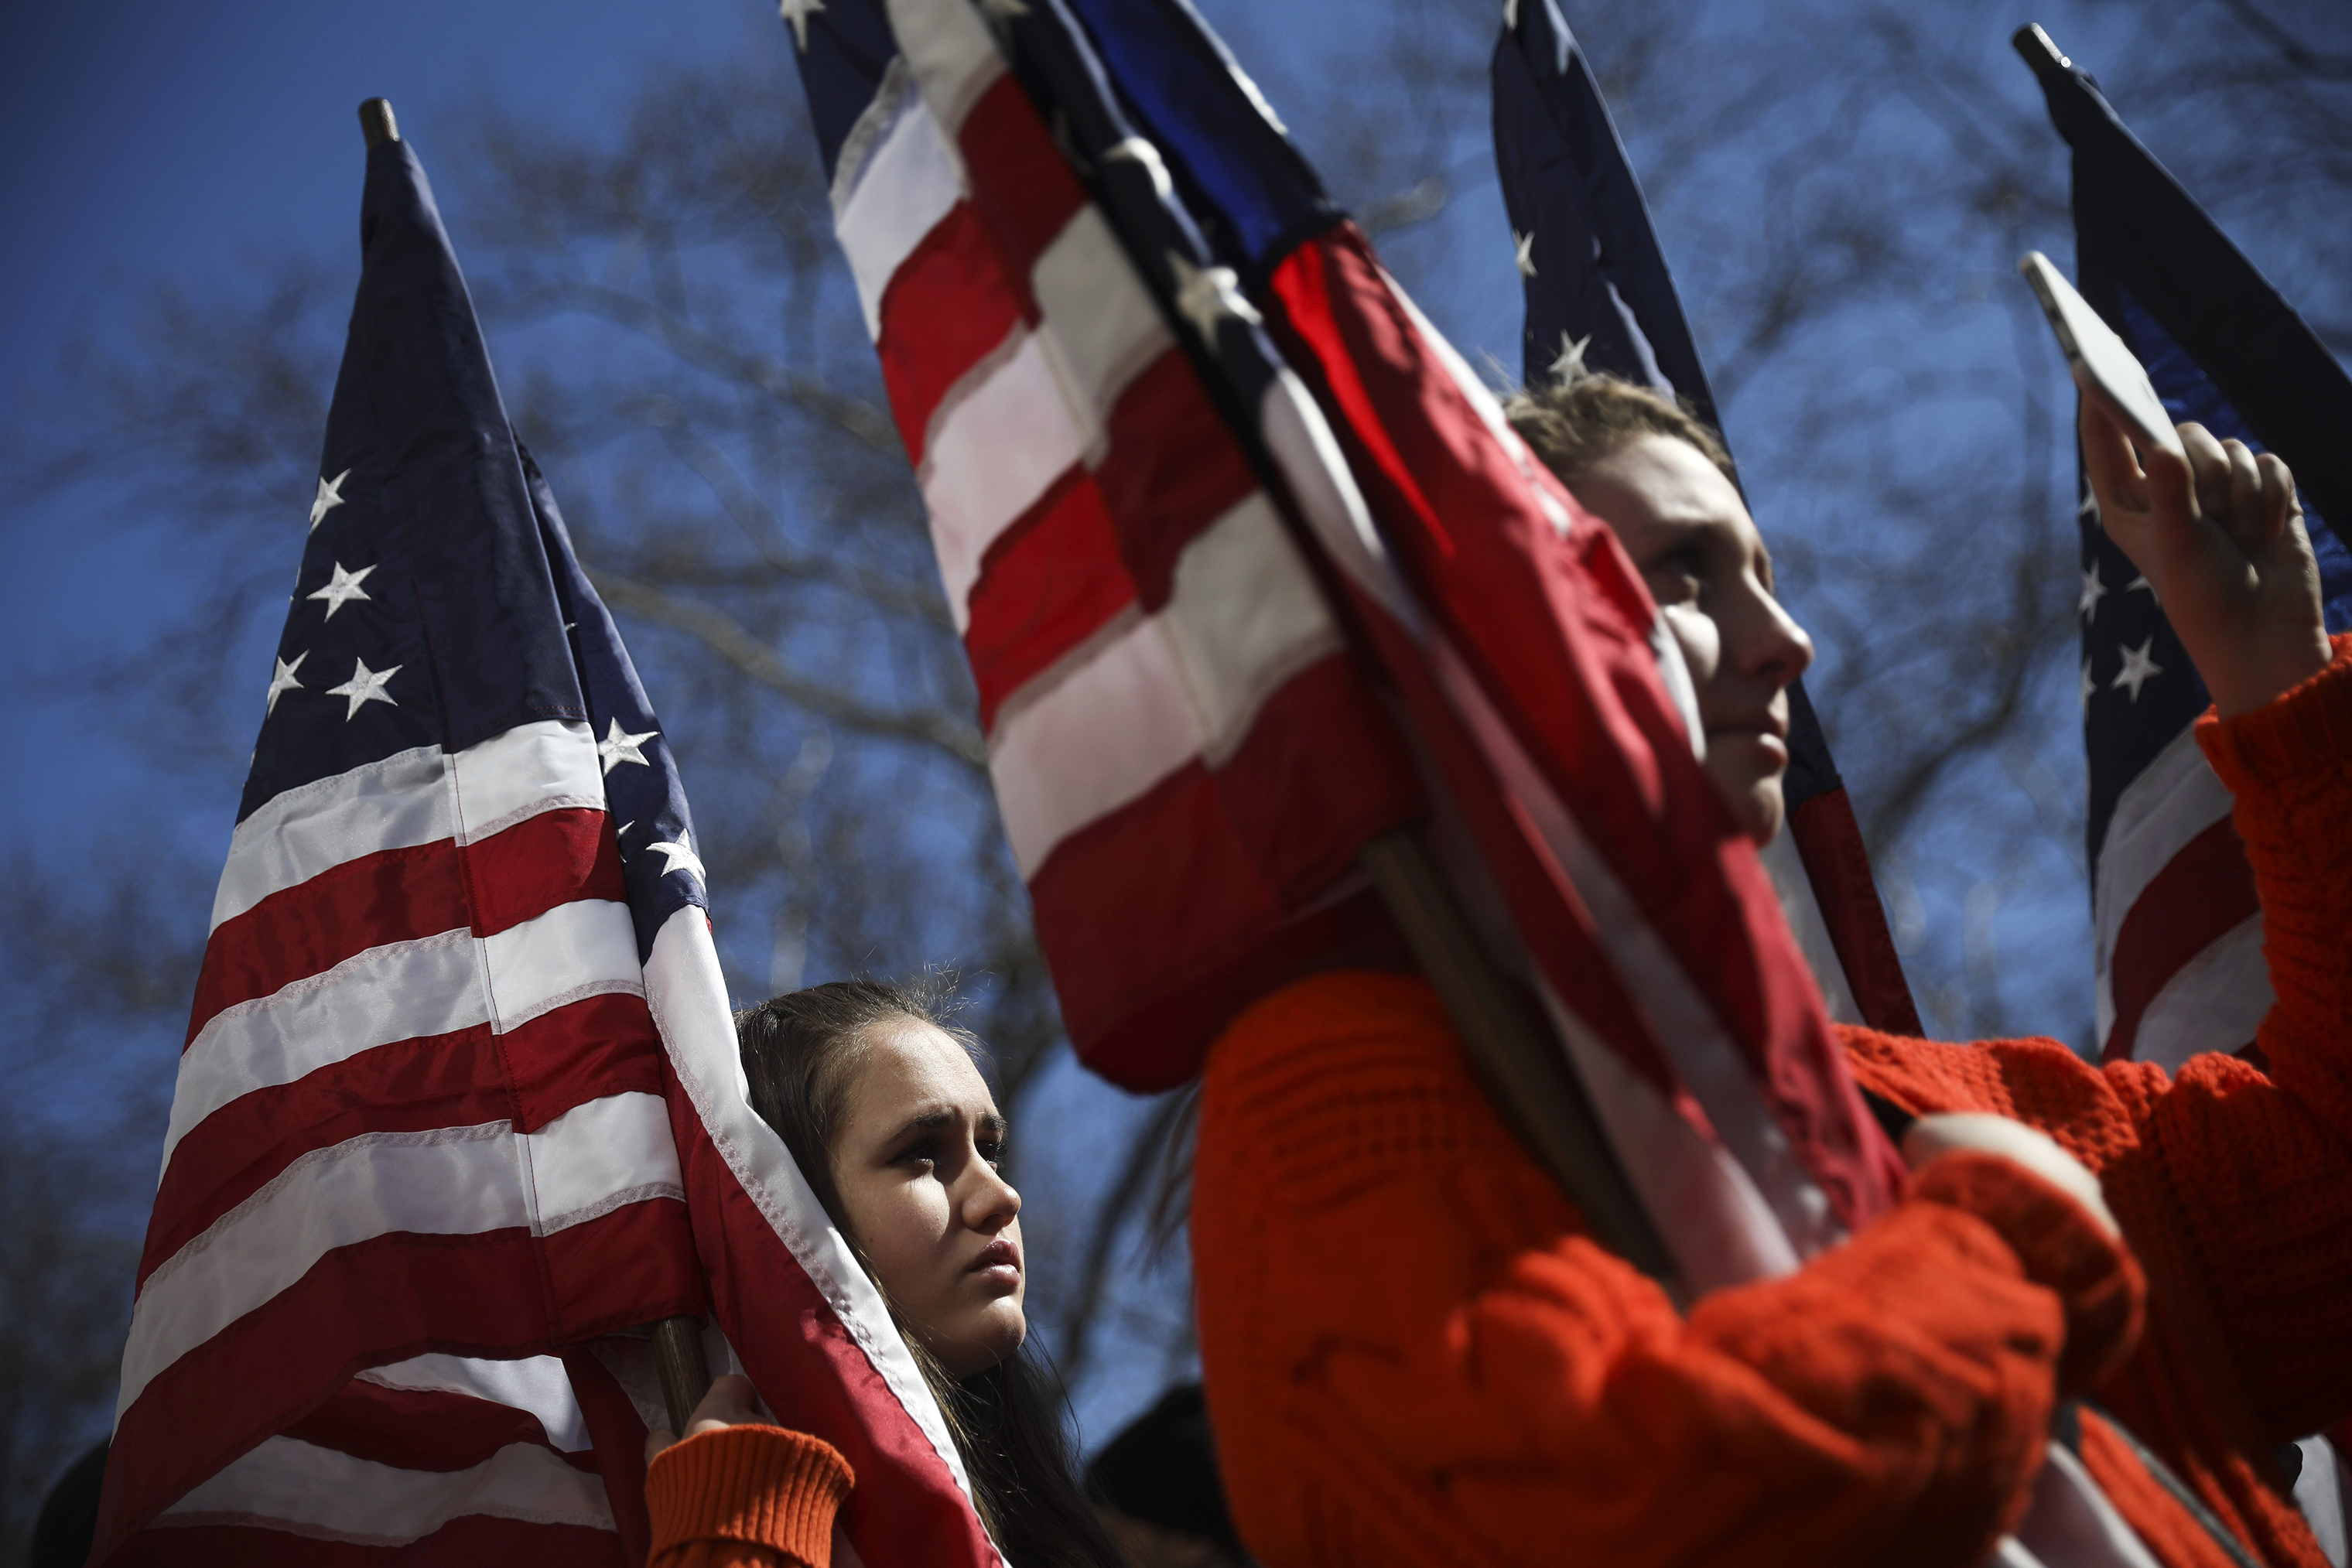 High school students from New Jersey hold American flags as they attend the March For Our Lives near Columbus Circle.